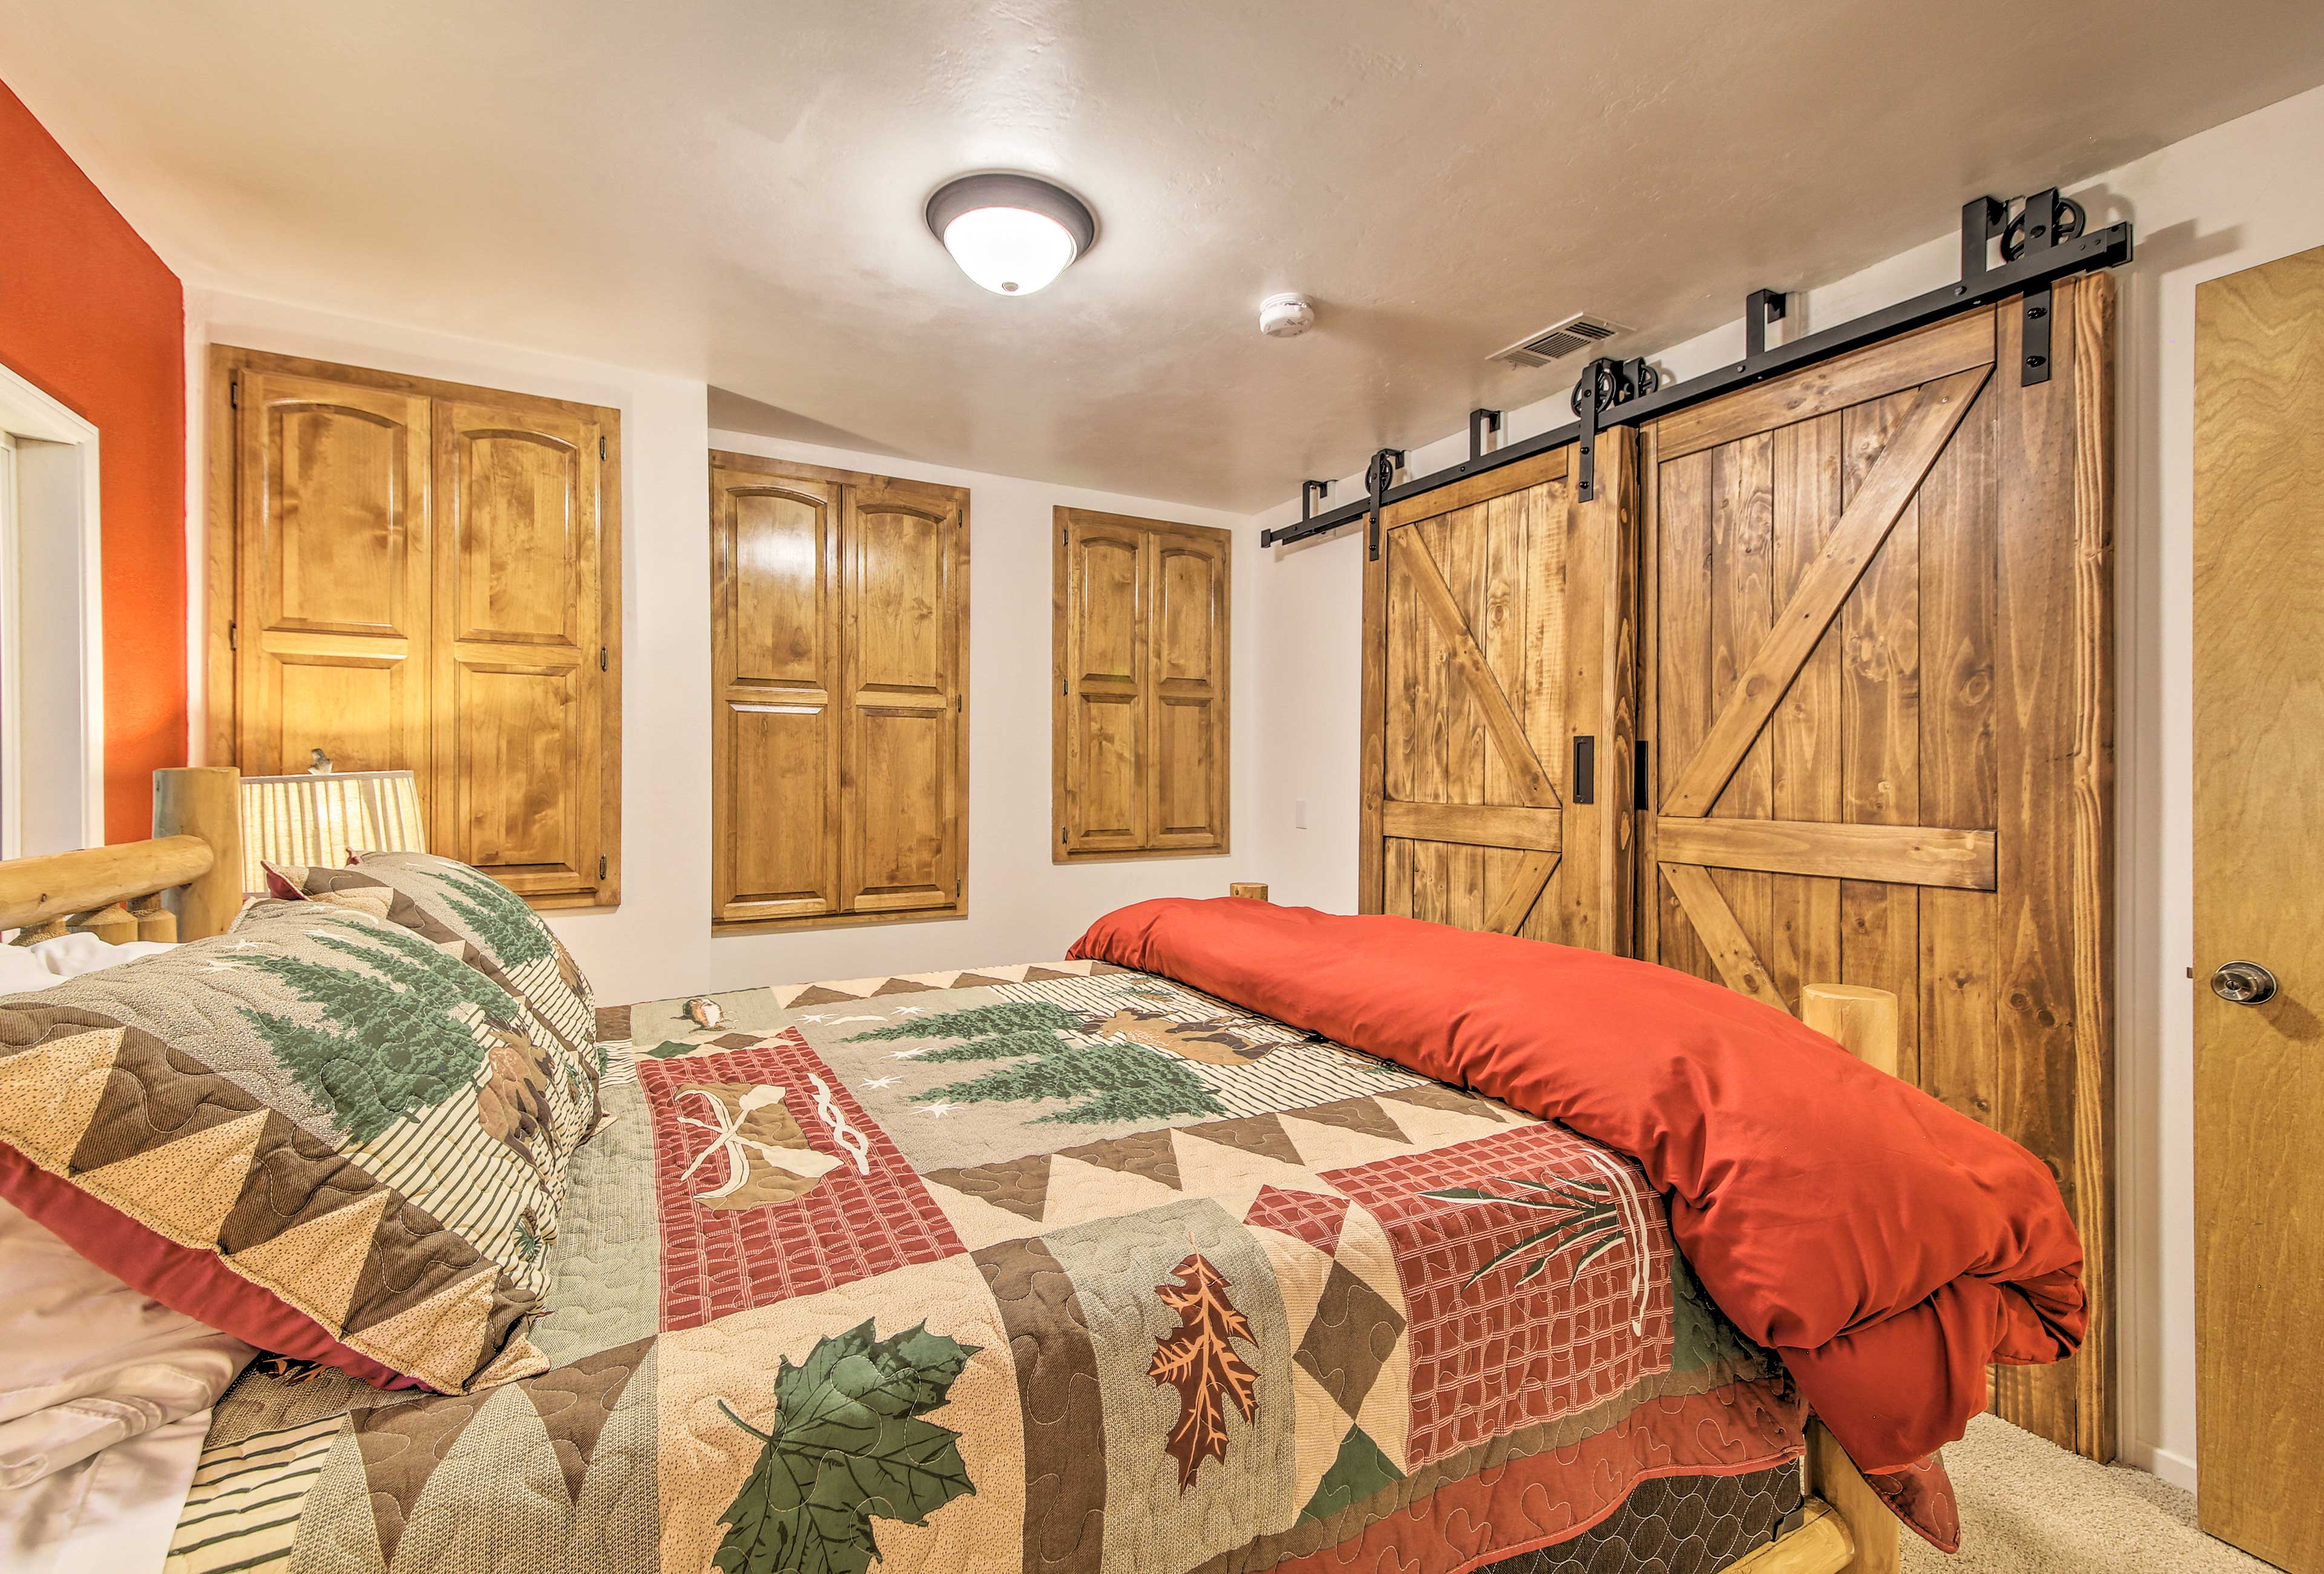 Colorful quilts pair perfectly with rustic wood accents.